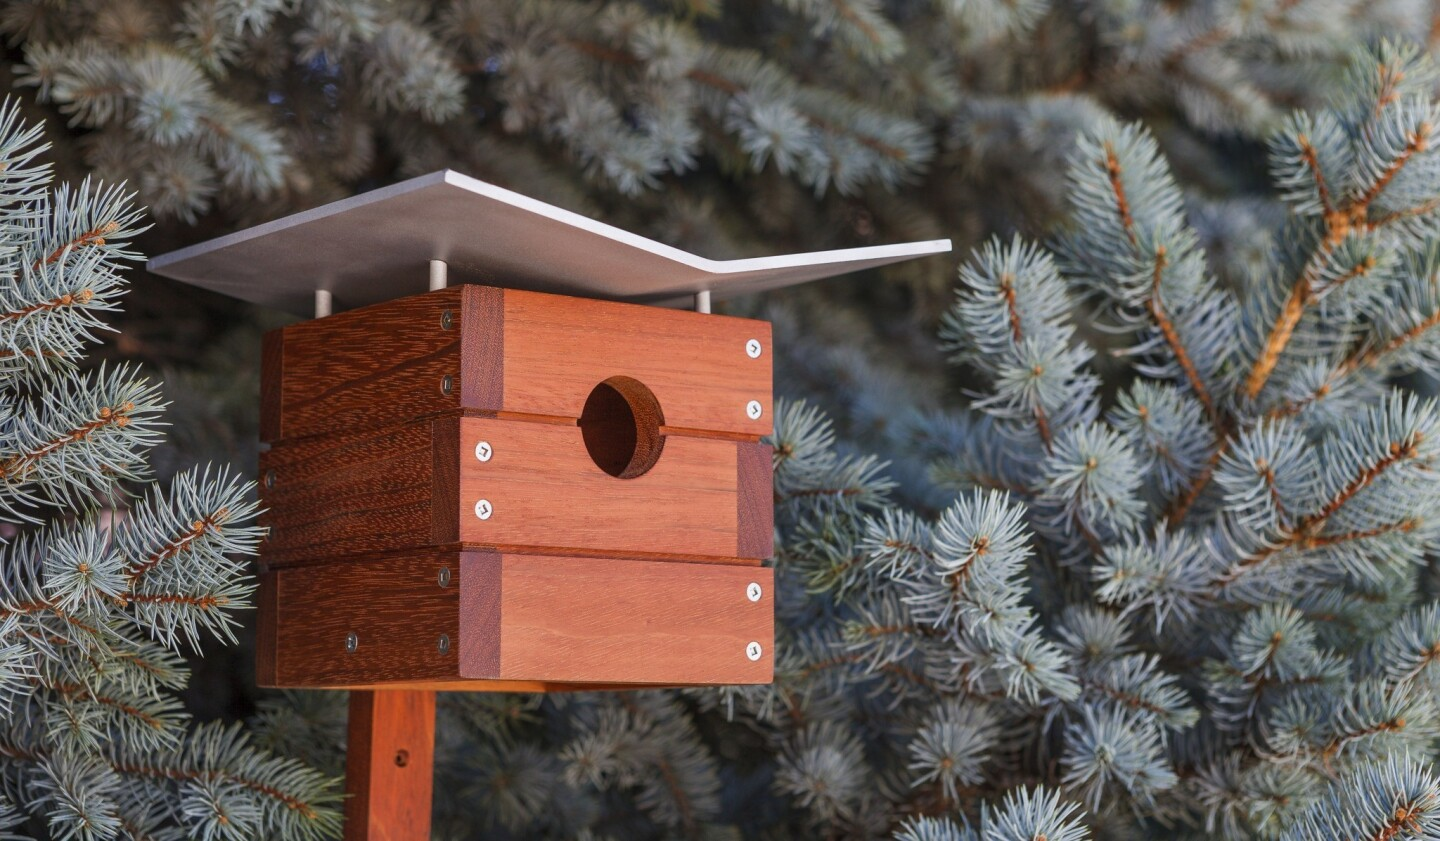 The Ralph birdhouse pays homage to architect Ralph Rapson, who designed the 1945 Greenbelt House, one of the earliest Case Study houses. The birdhouse is constructed of sustainably harvested wood and is built with birds in mind.